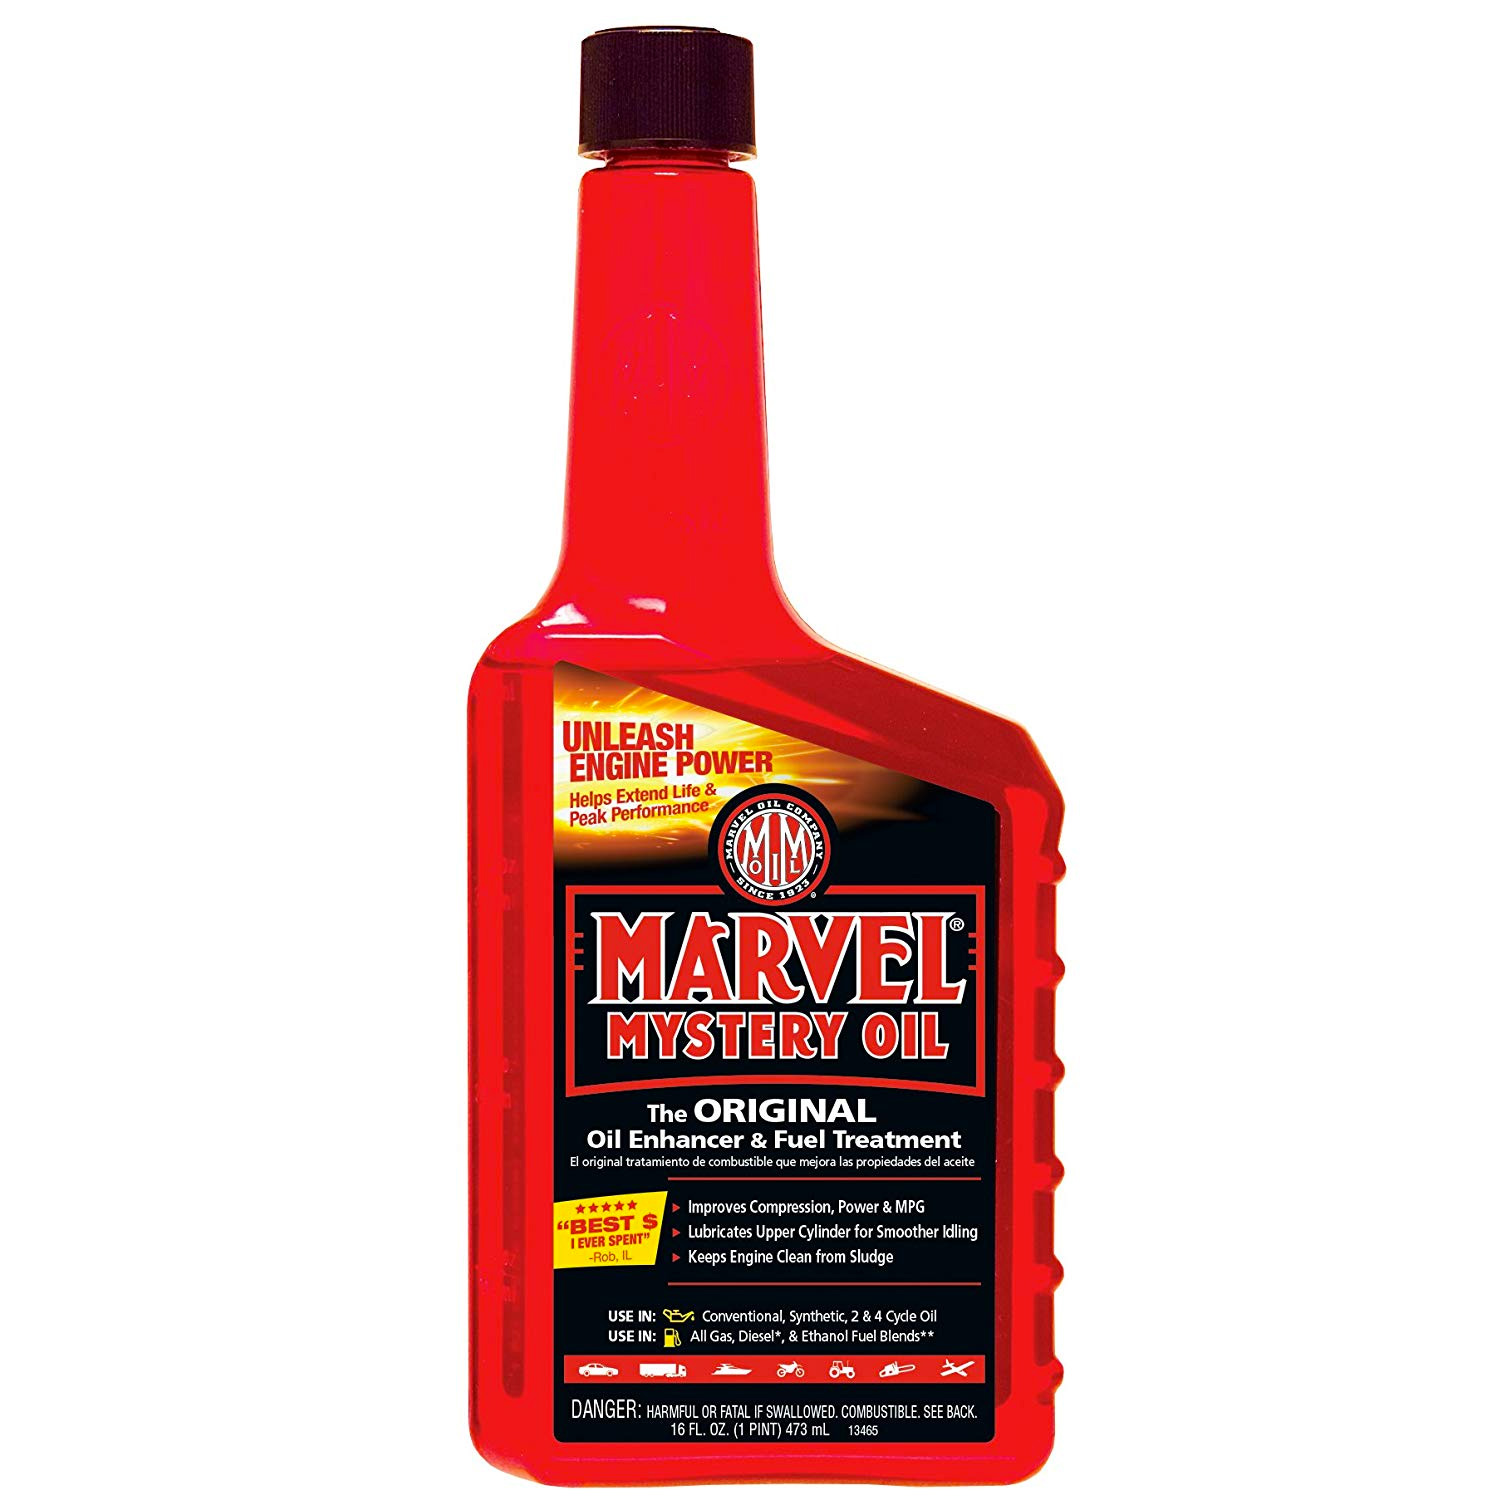 Marvel Mystery Oil 16 Oz. Marvel Oil Enhancer & Fuel Treatment